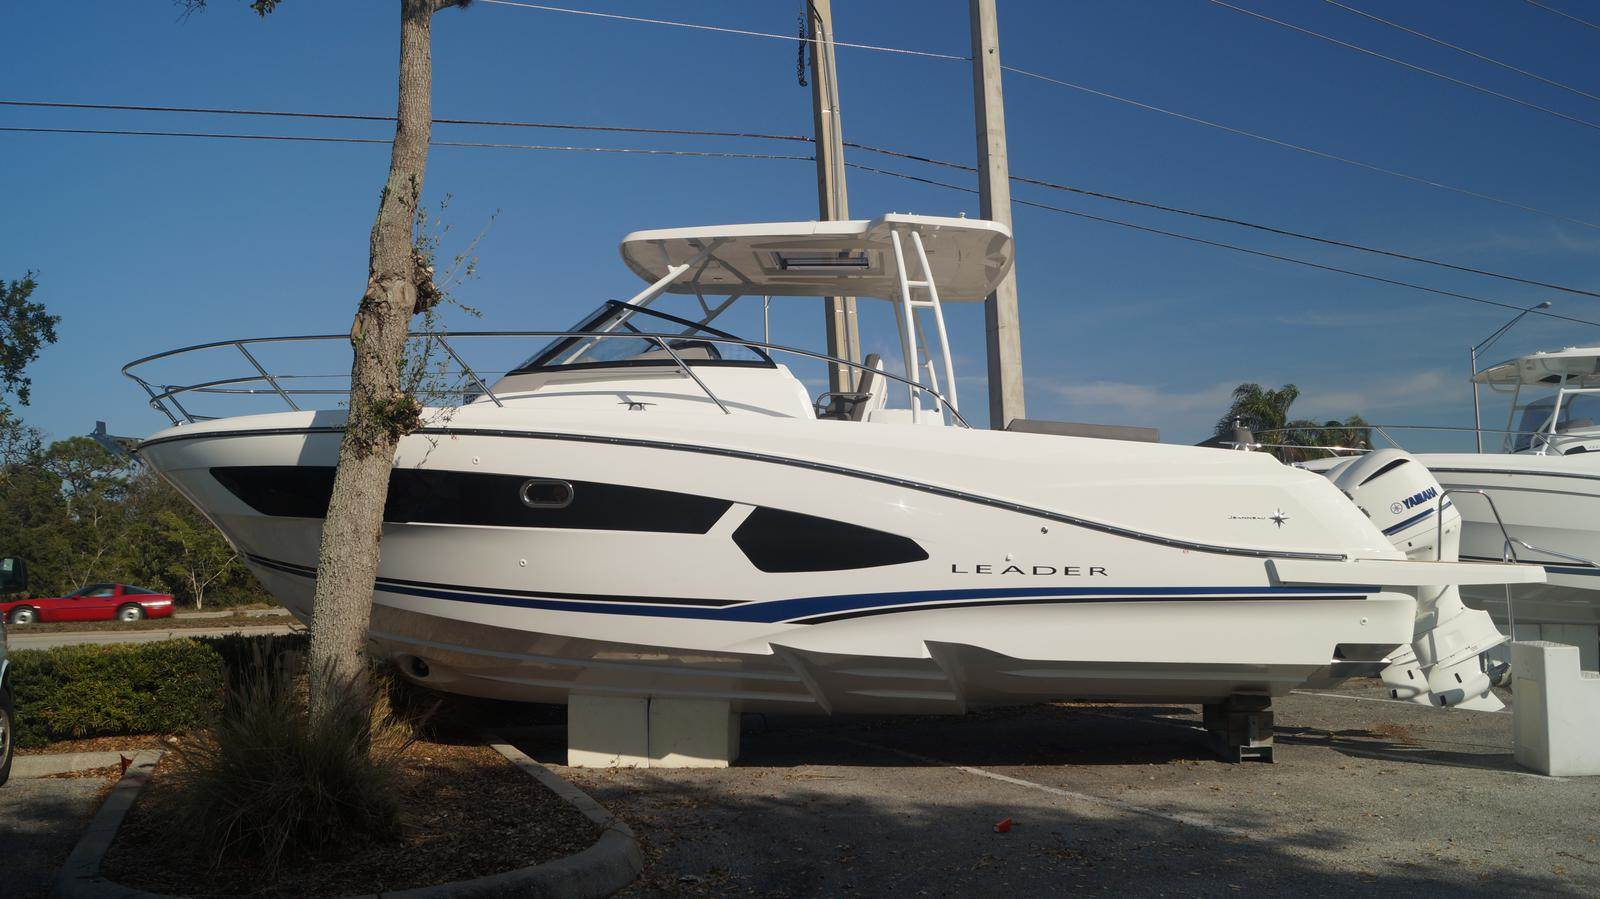 NEW 2019 Jeanneau Leader 10.5 - Sara Bay Marina